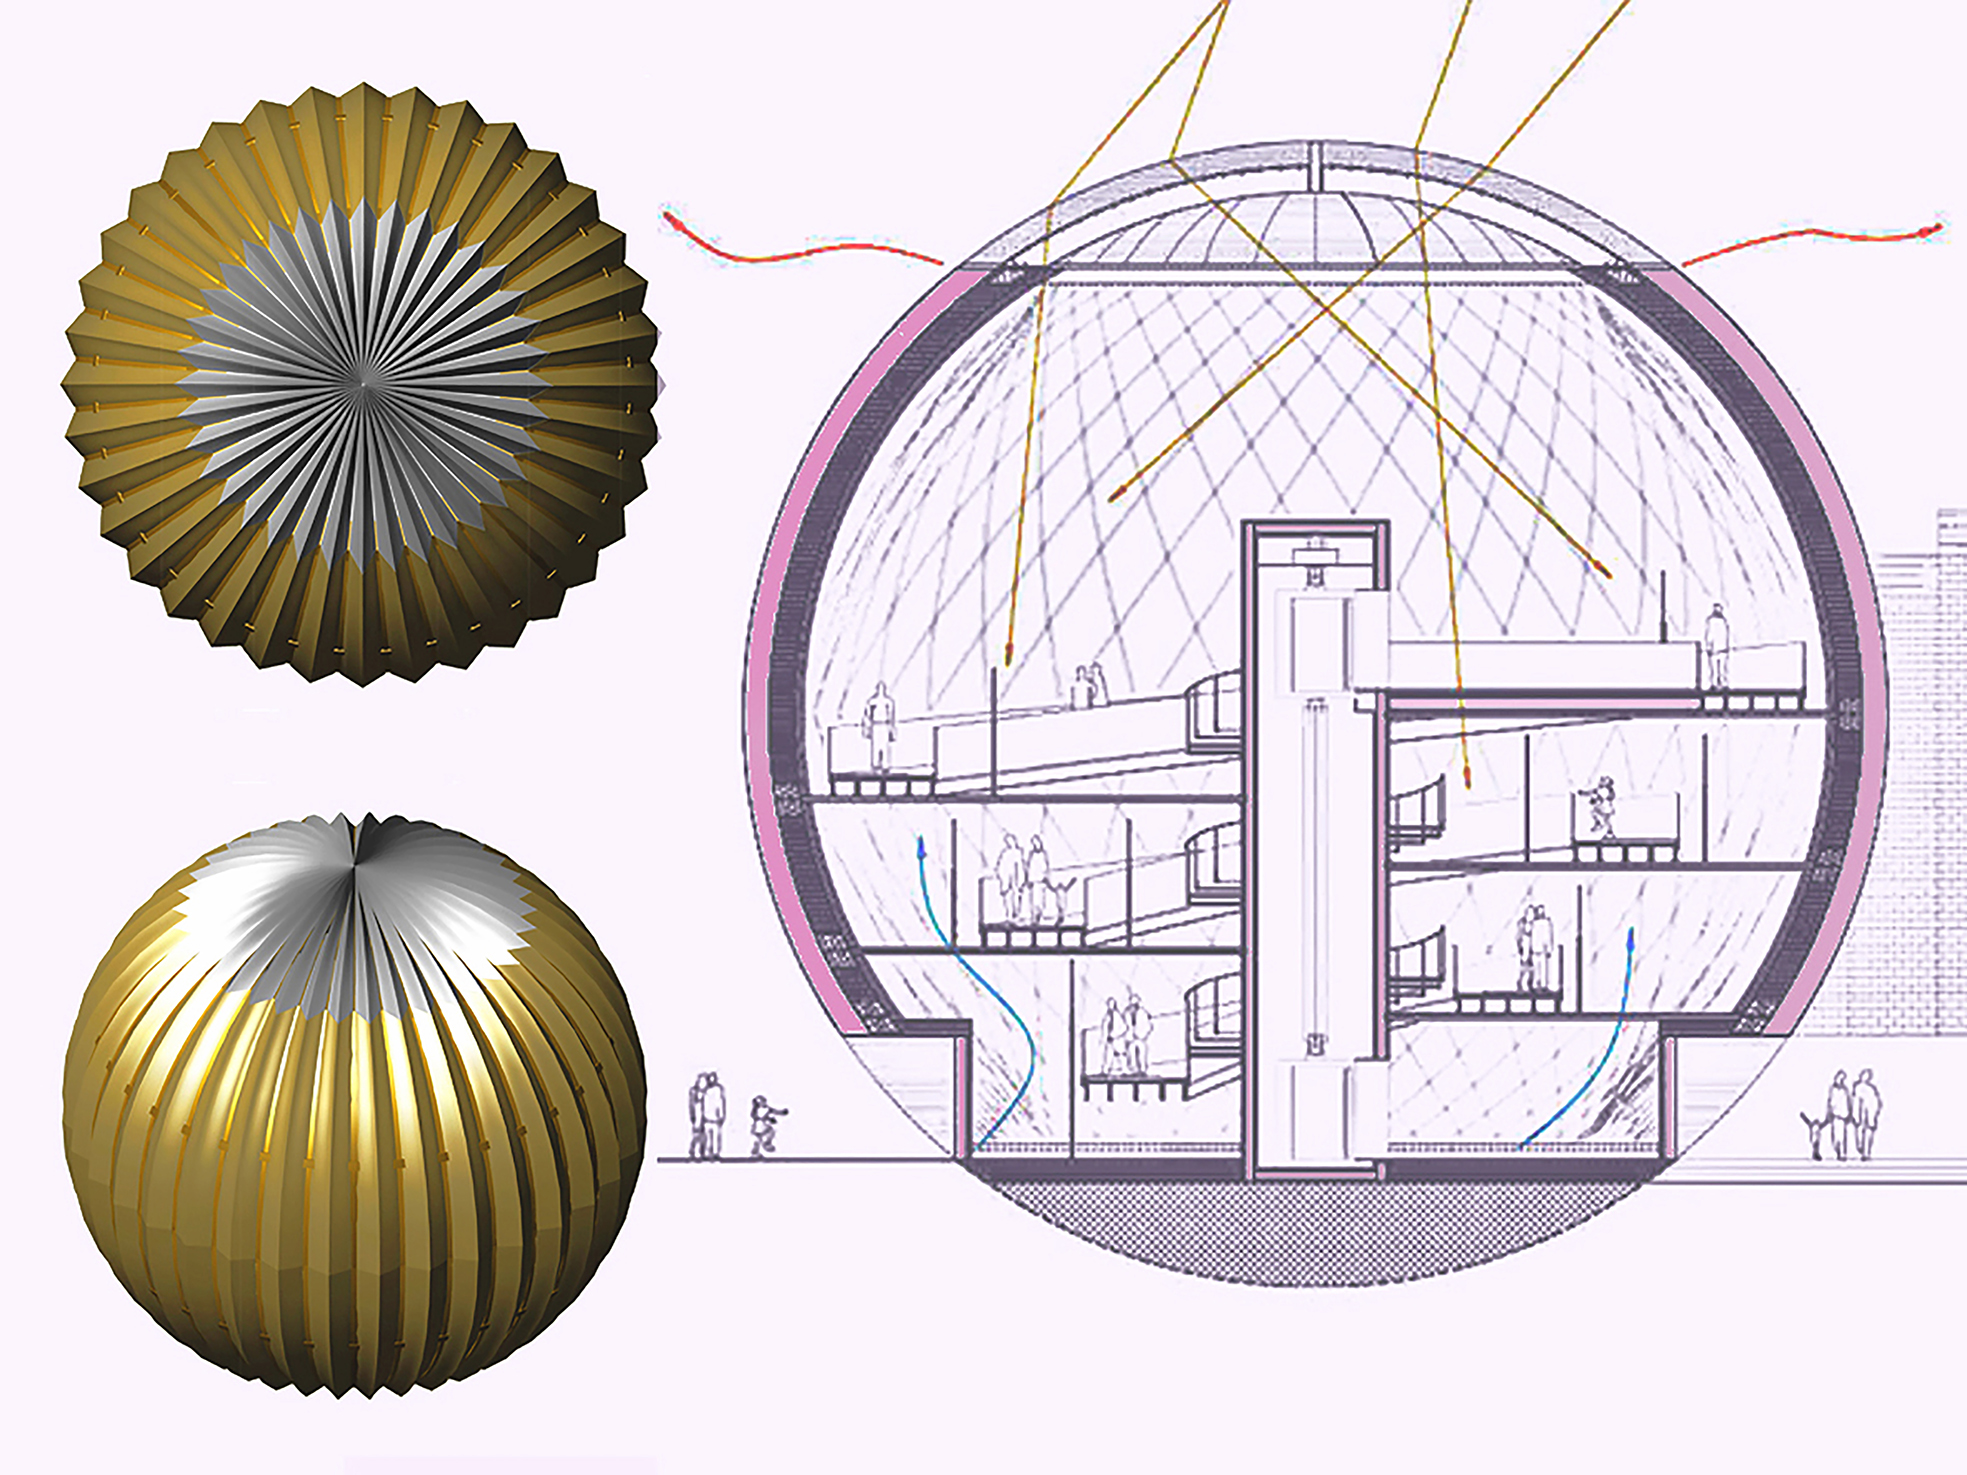 Spherical Art Gallery Simone De Gale Architects Archello,Chase Credit Card Designs